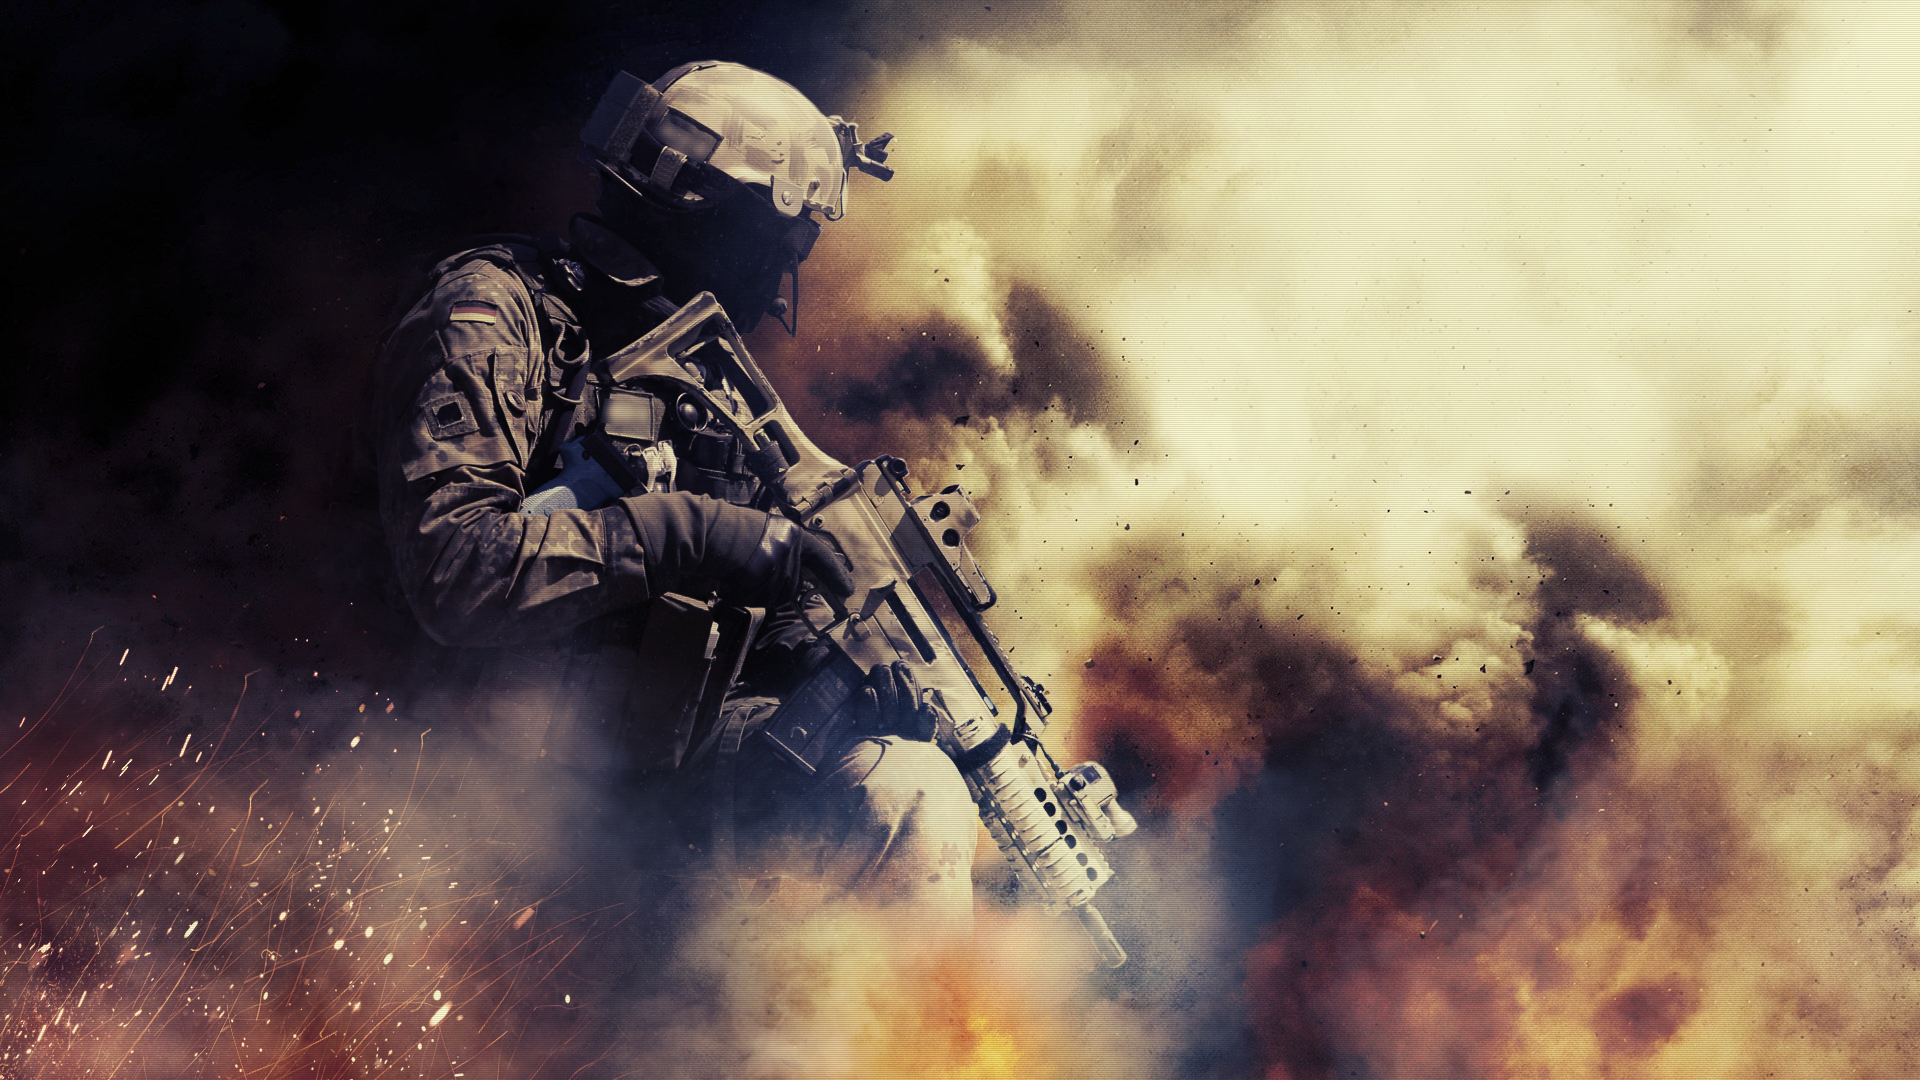 Army Love Wallpaper Hd : GERMAN KSK Full HD Wallpaper and Hintergrund 1920x1080 ID:471224